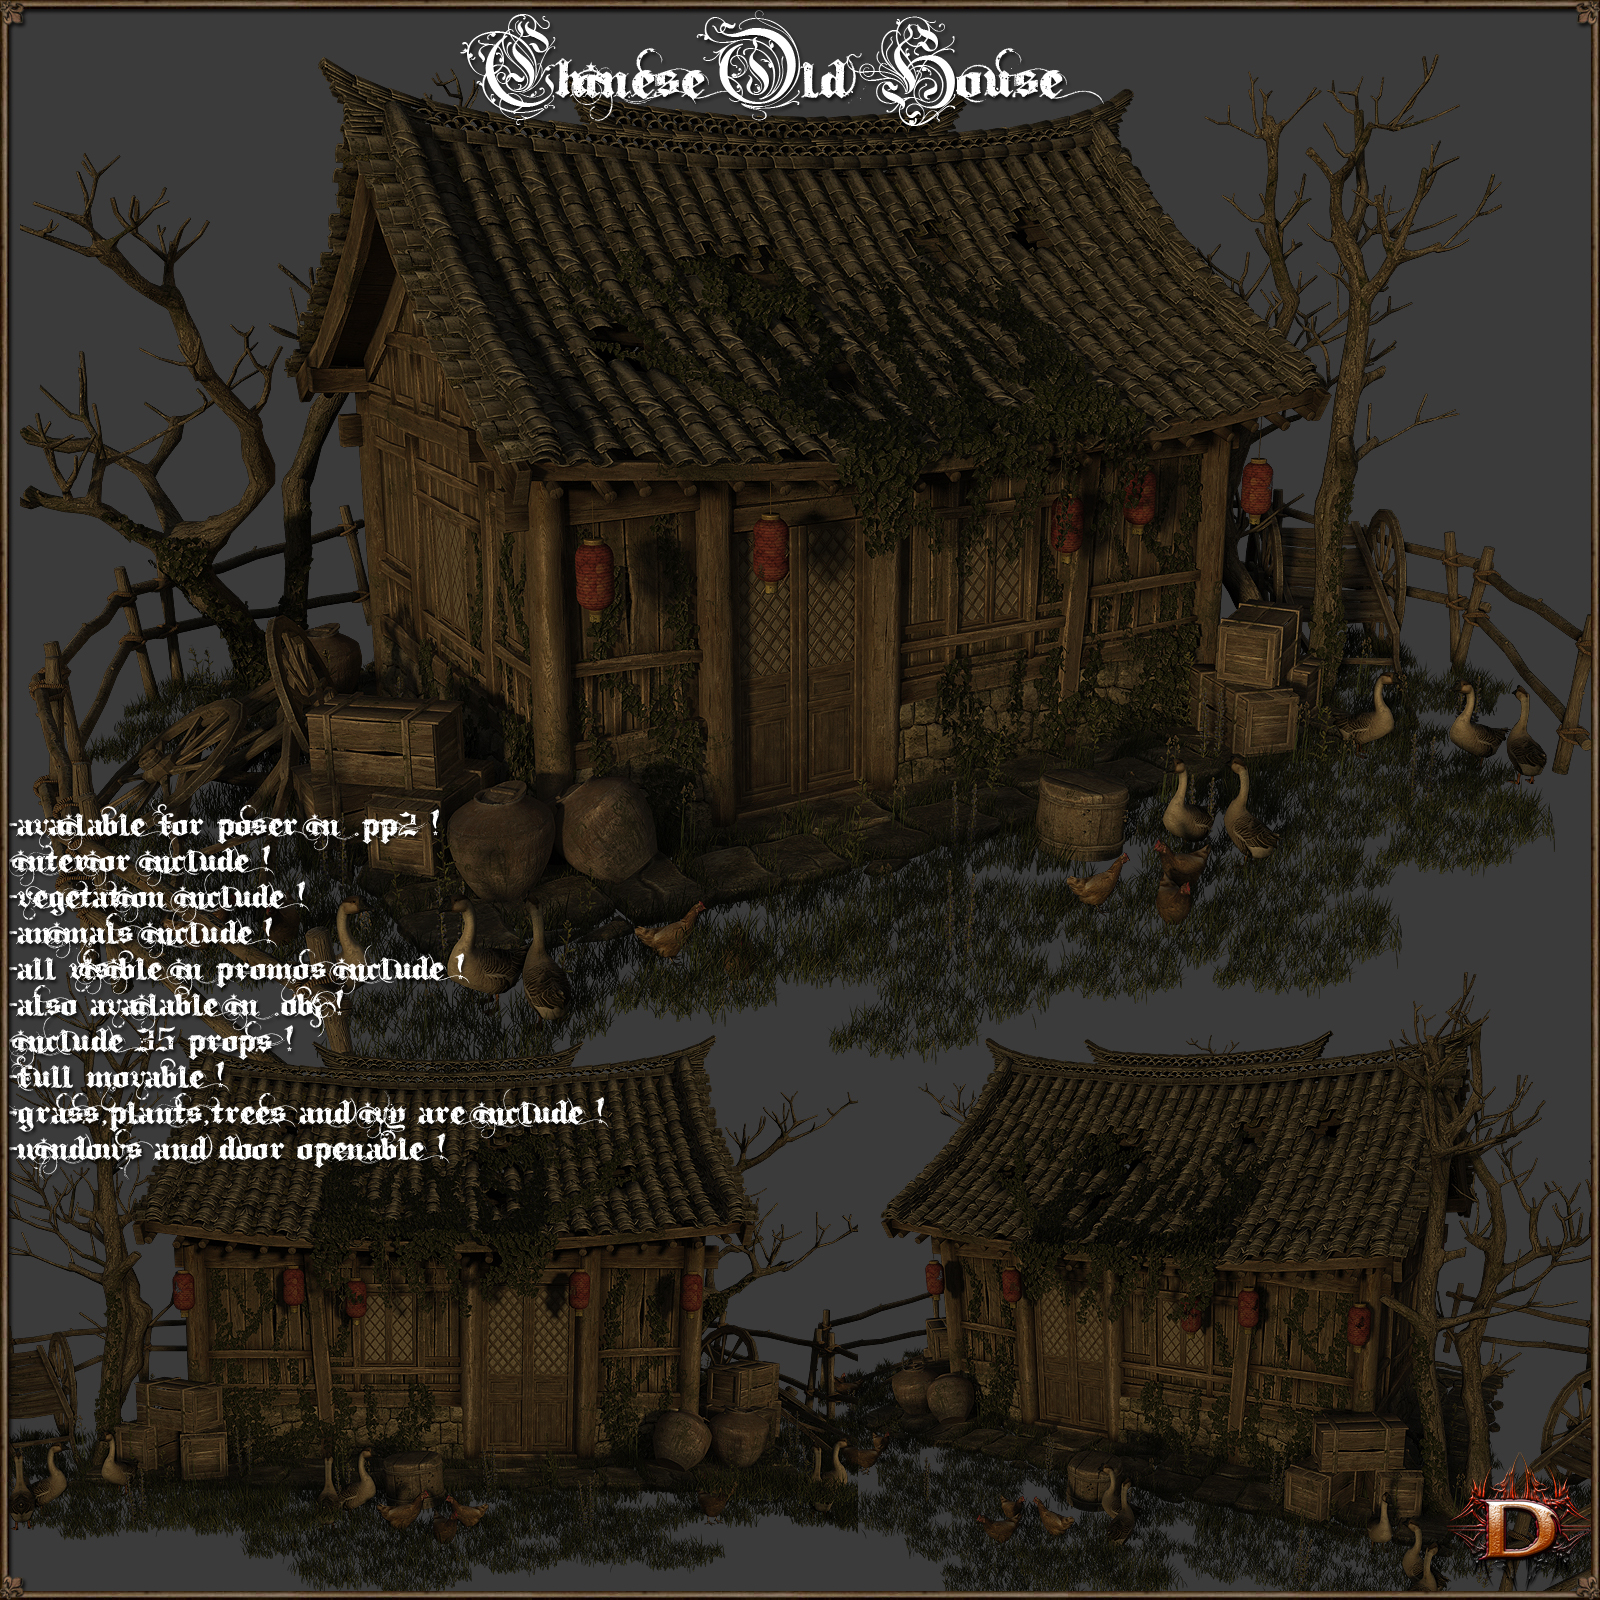 Chinese Old House by Dante78